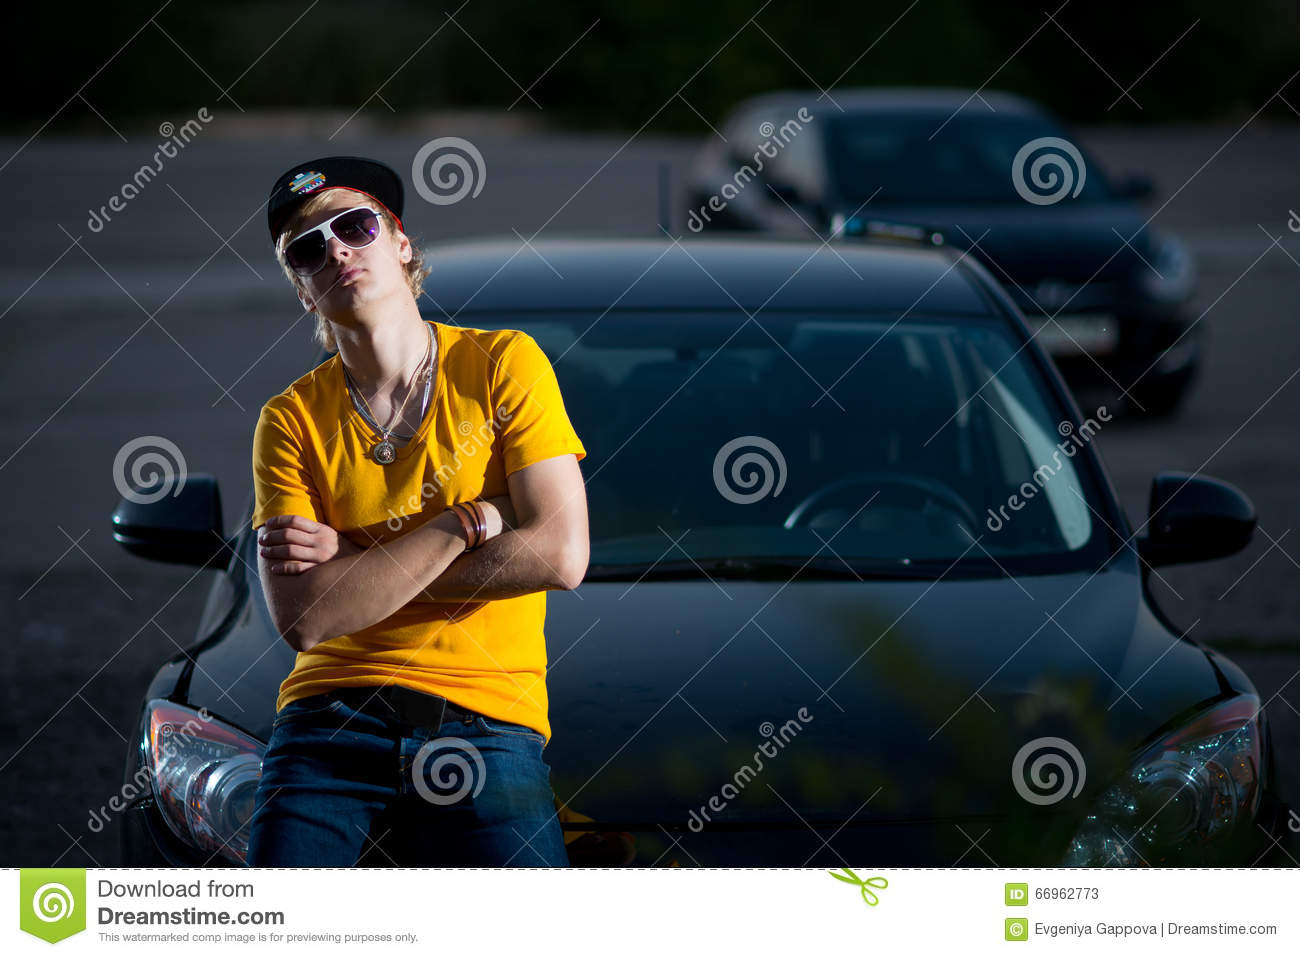 A Rich Guy In A Car, Cool Dude. Mode, Male.